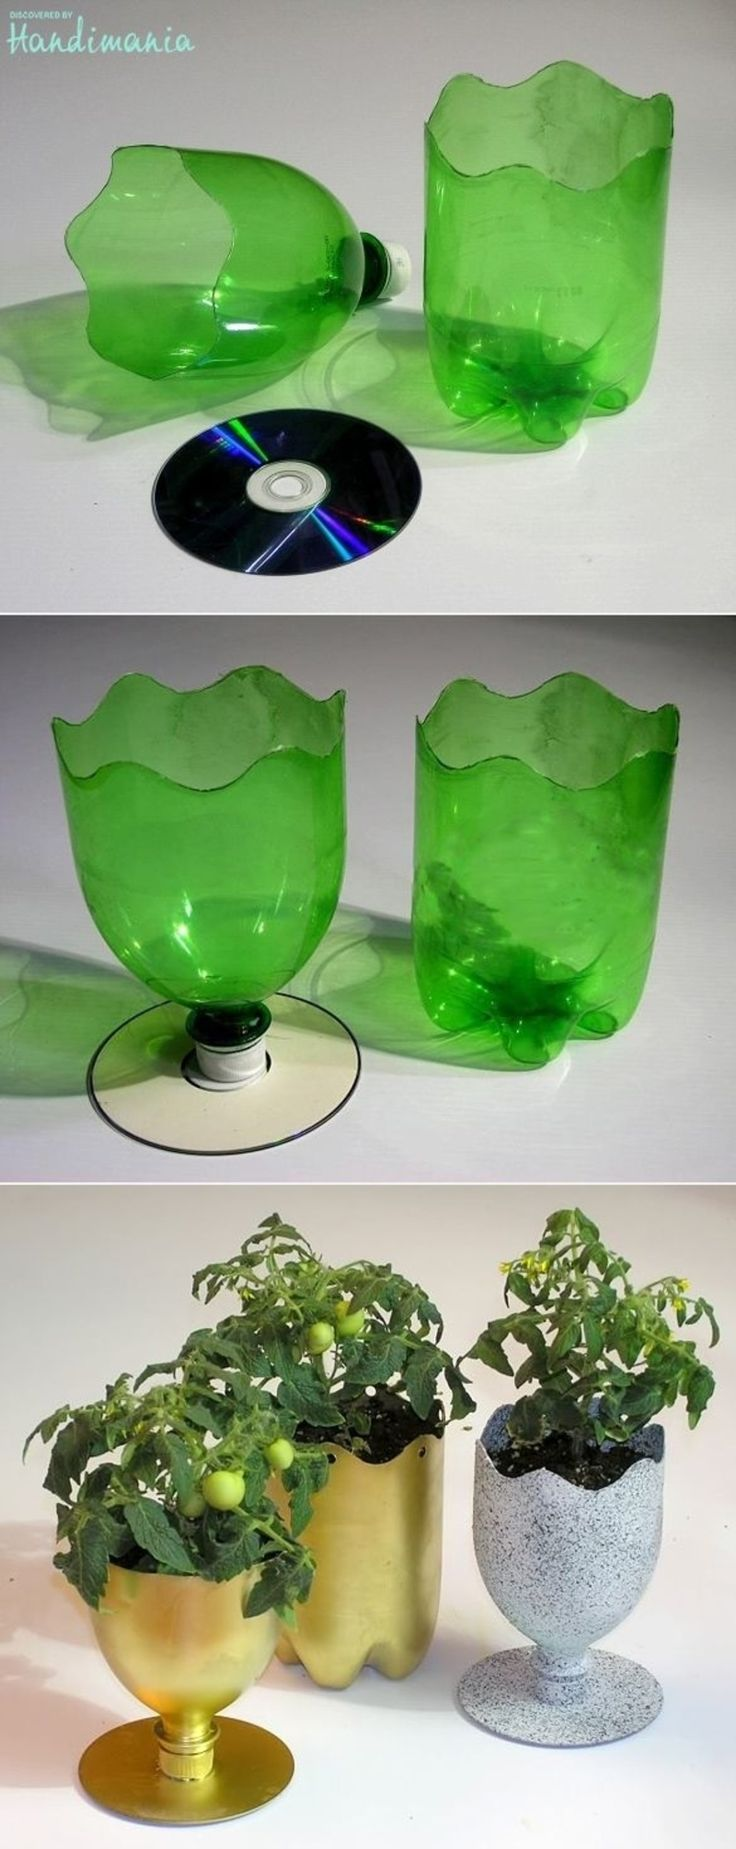 35 Ways to #Recycle Old CDs ... More